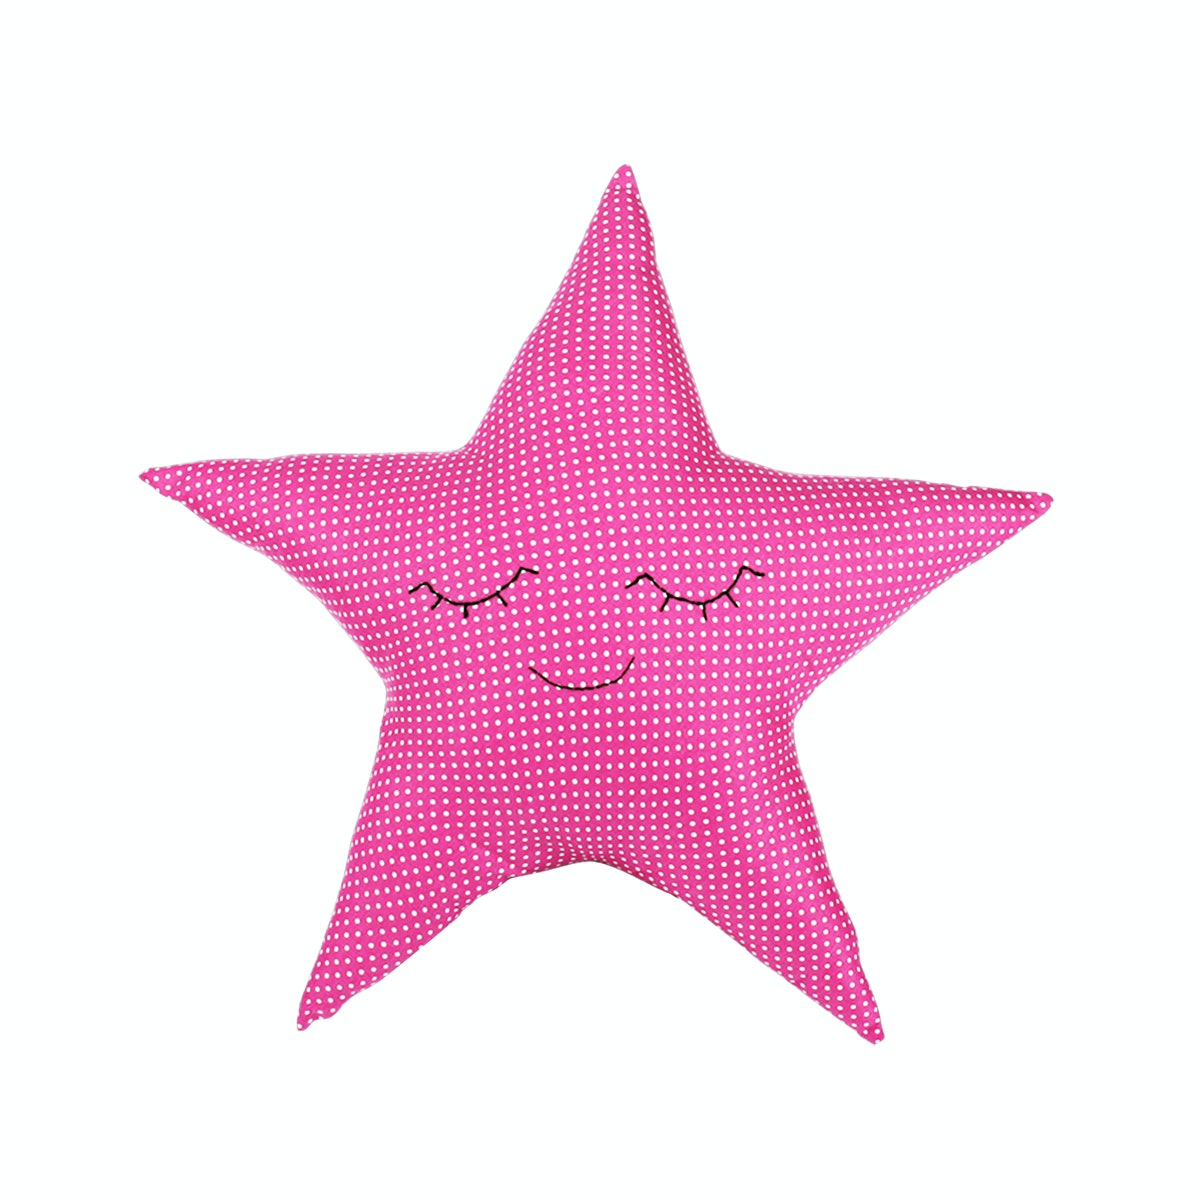 Cincara Pillow - Star